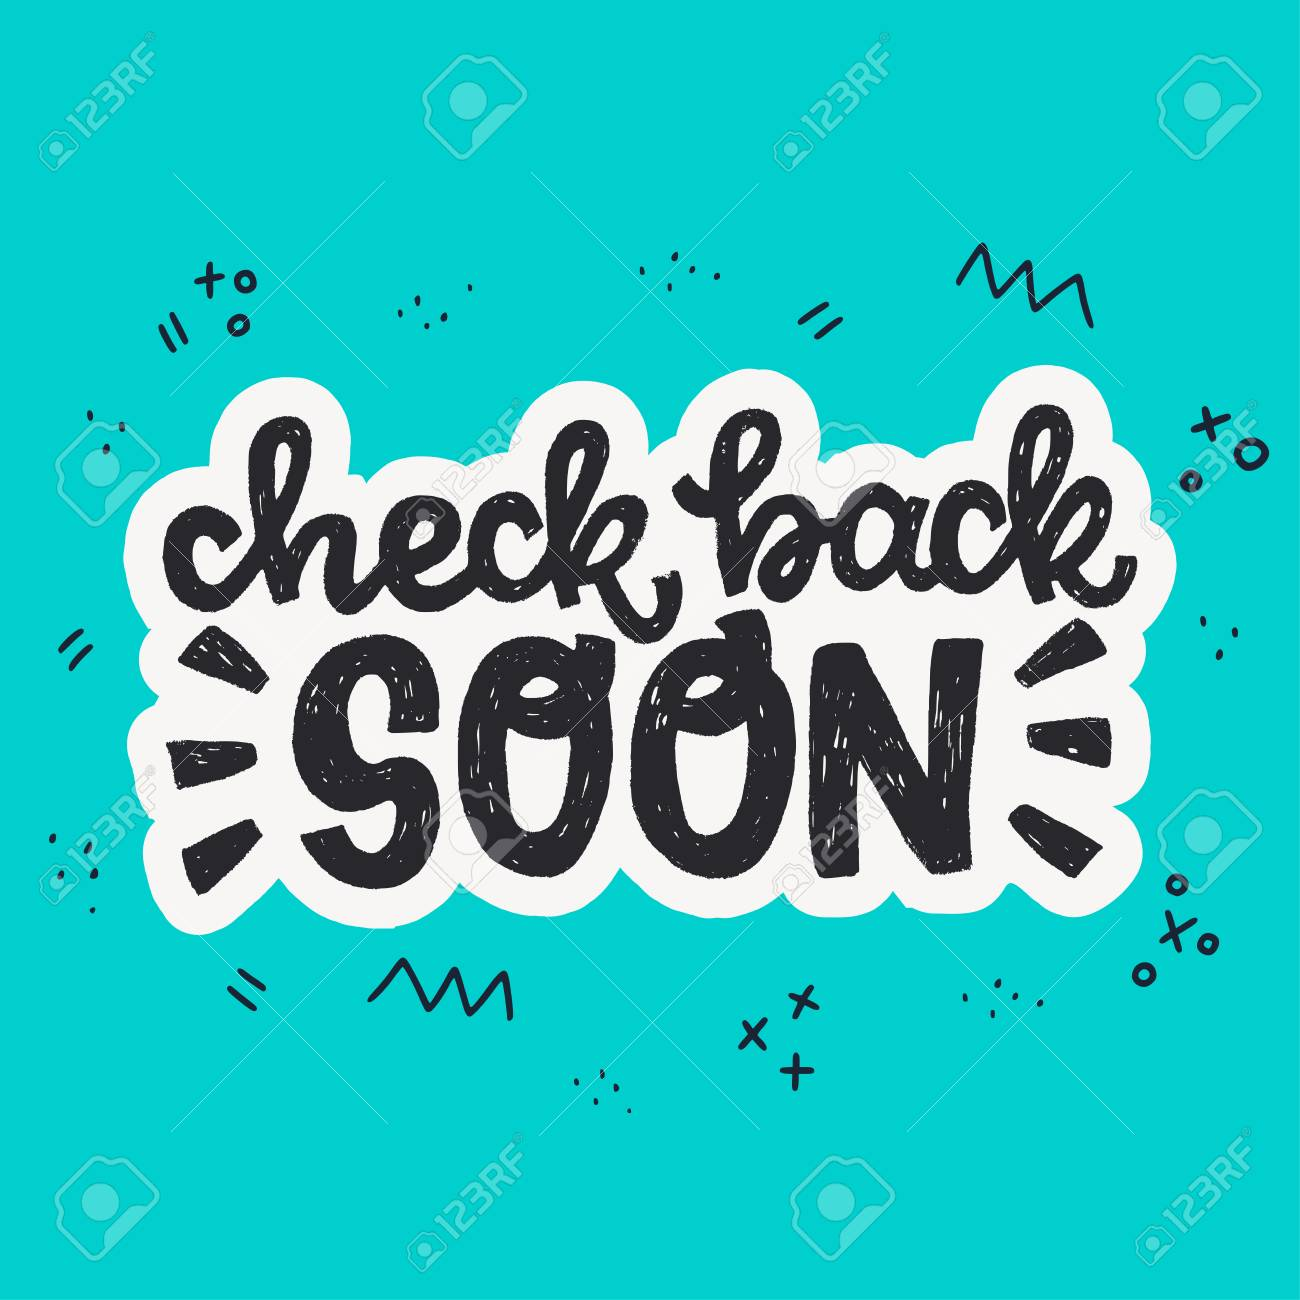 Image result for check back for updates clipart